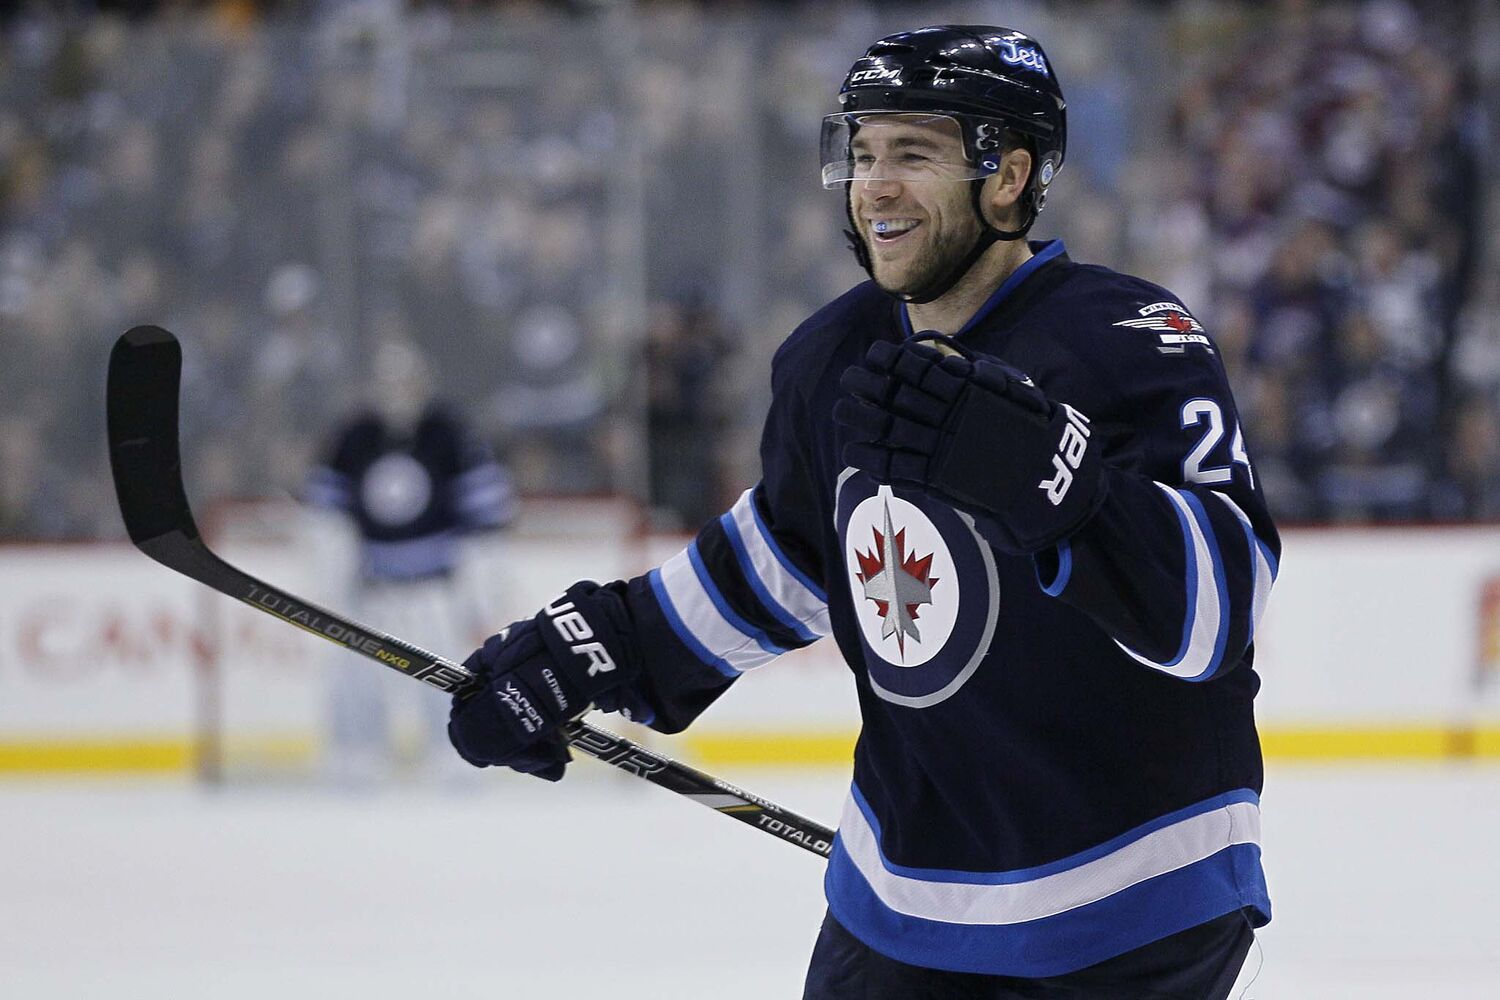 Winnipeg Jets' Grant Clitsome (24) celebrates his goal against the San Jose Sharks during the second period.